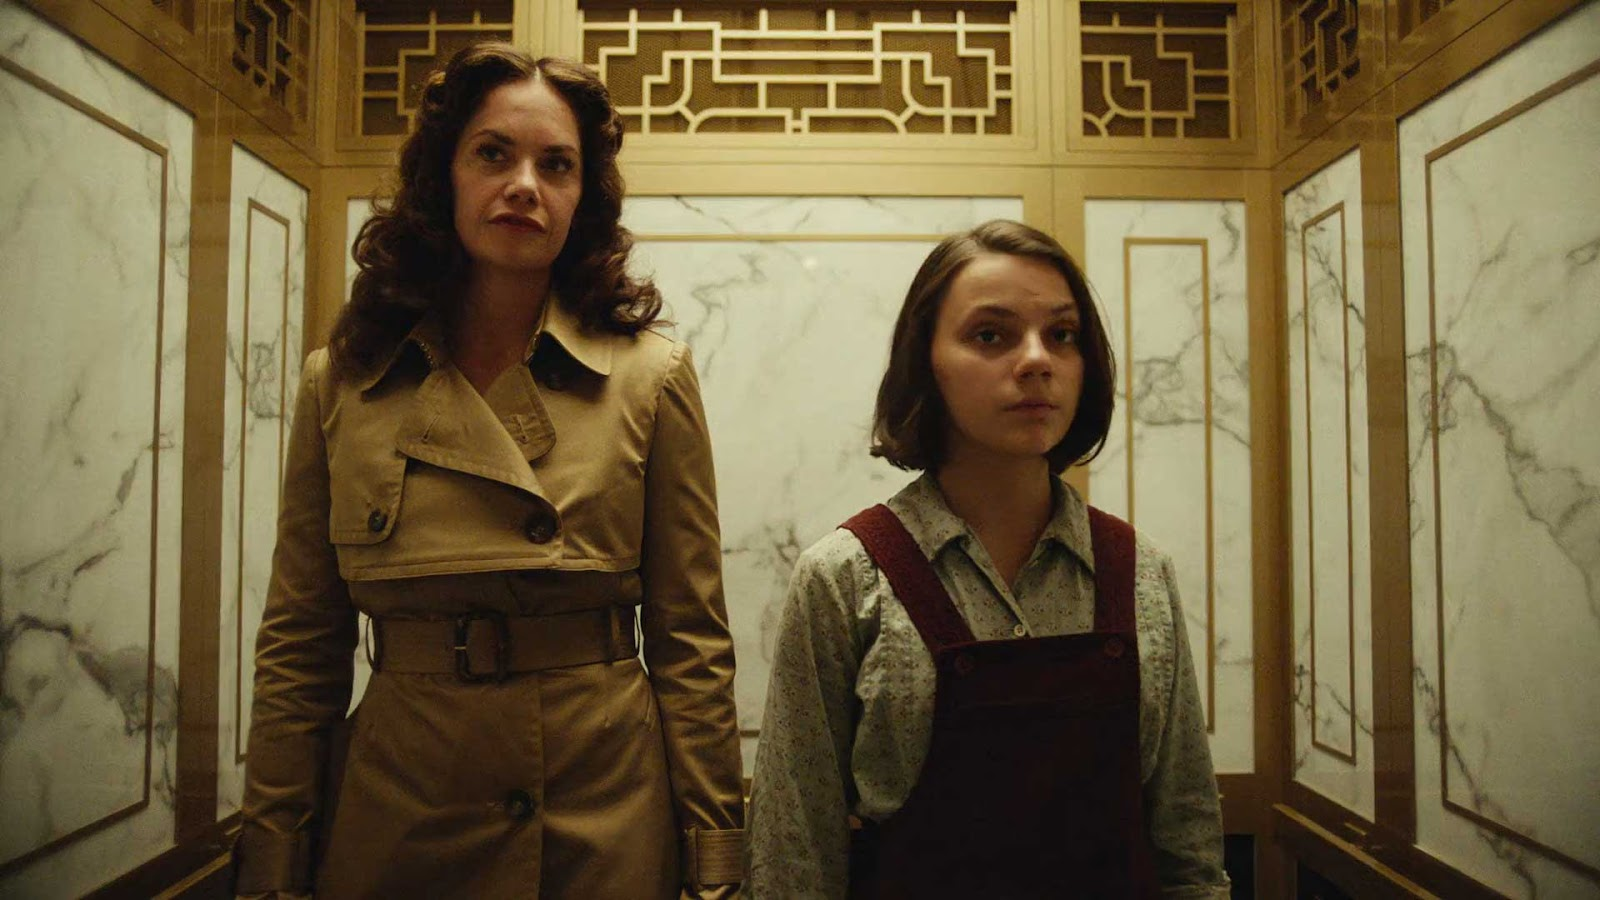 A young girl is standing next to an older woman in an ornate elevator.